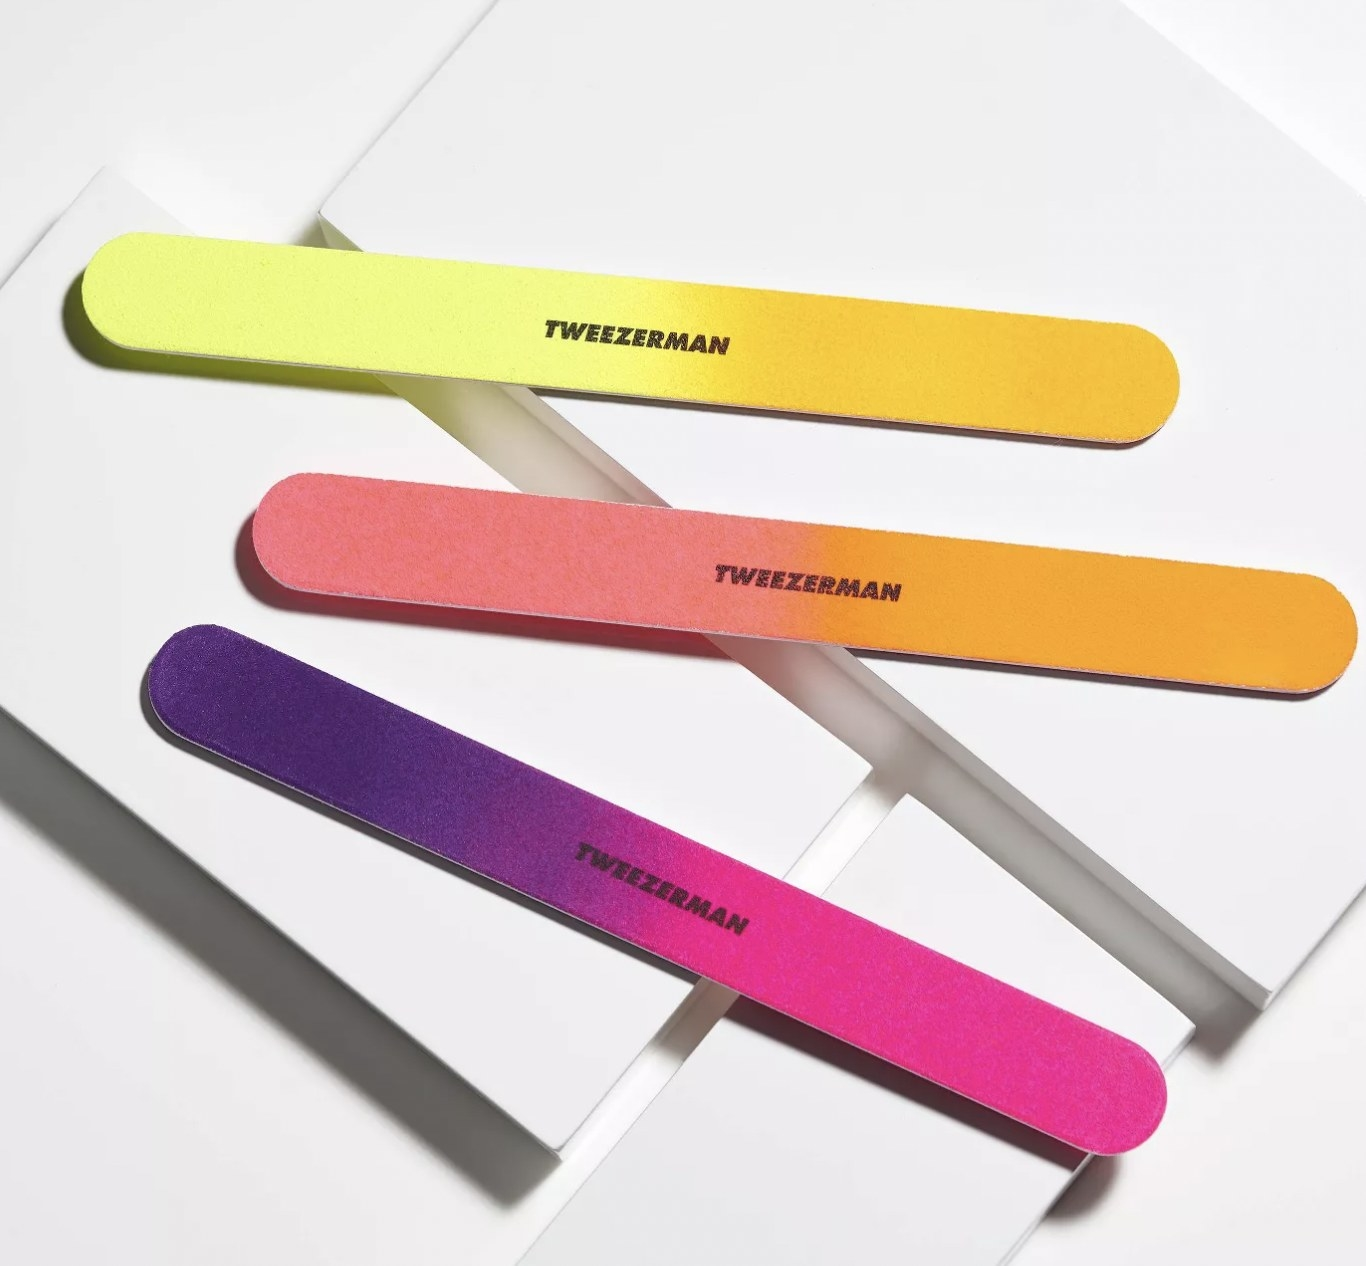 A set of 3 multicolored nail files